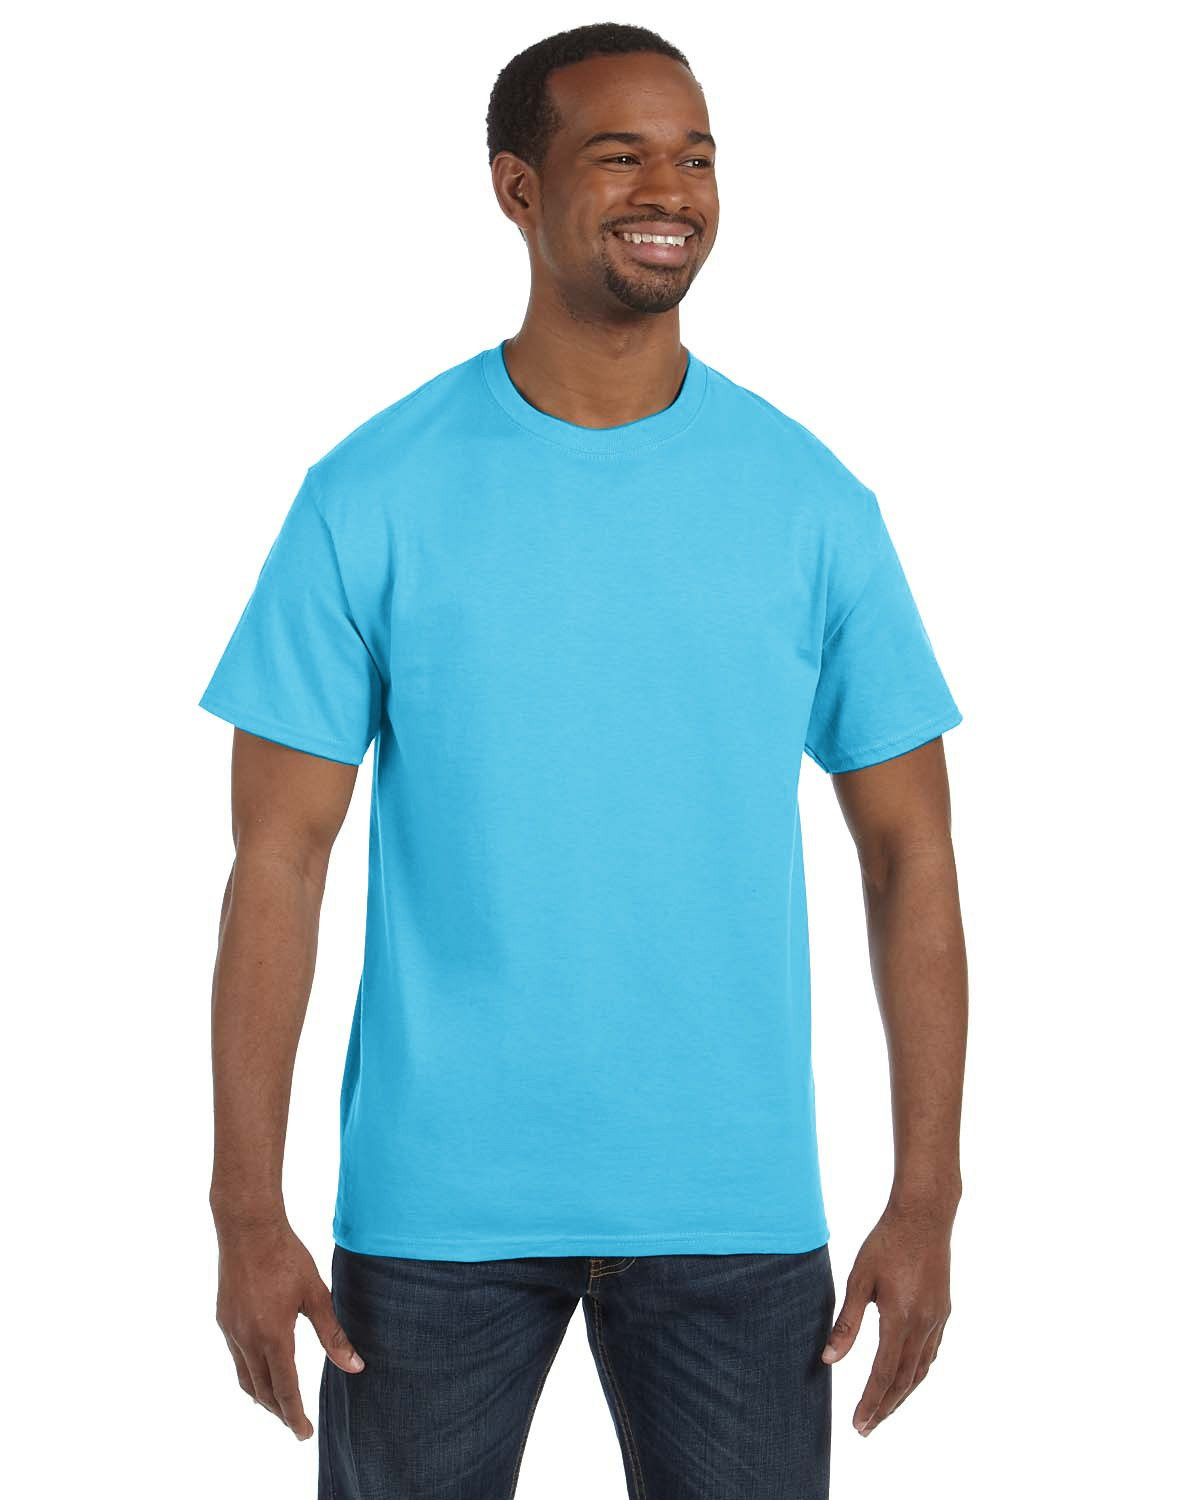 Hanes - 5250T - Men's 6.1 oz. Tagless® T-Shirt